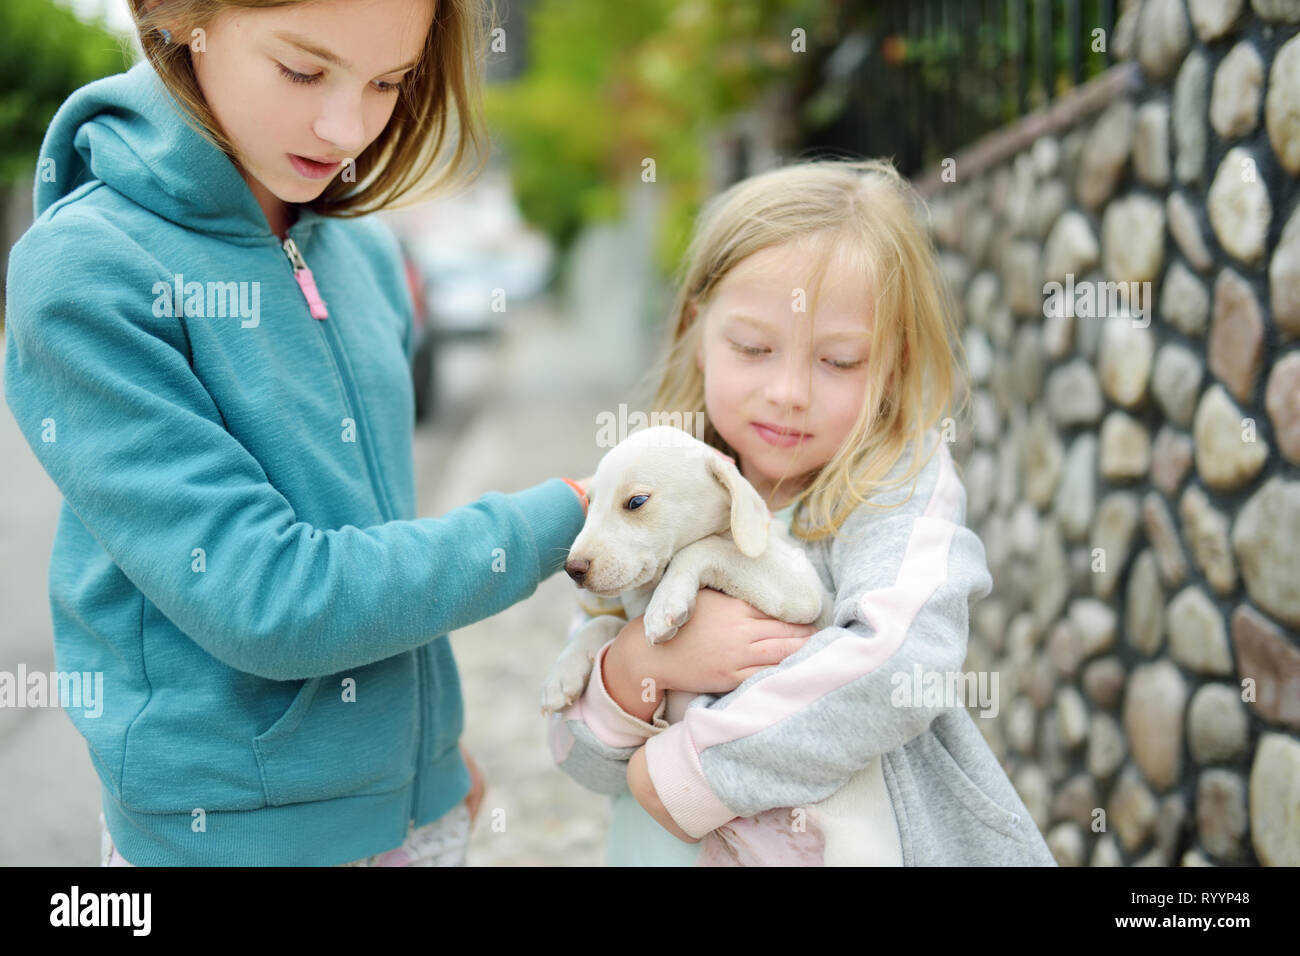 Two Cute Young Sisters Holding Small White Puppy Outdoors Kids Playing With Baby Dog On Summer Day Domestic Animals And Pets For Children Stock Photo Alamy